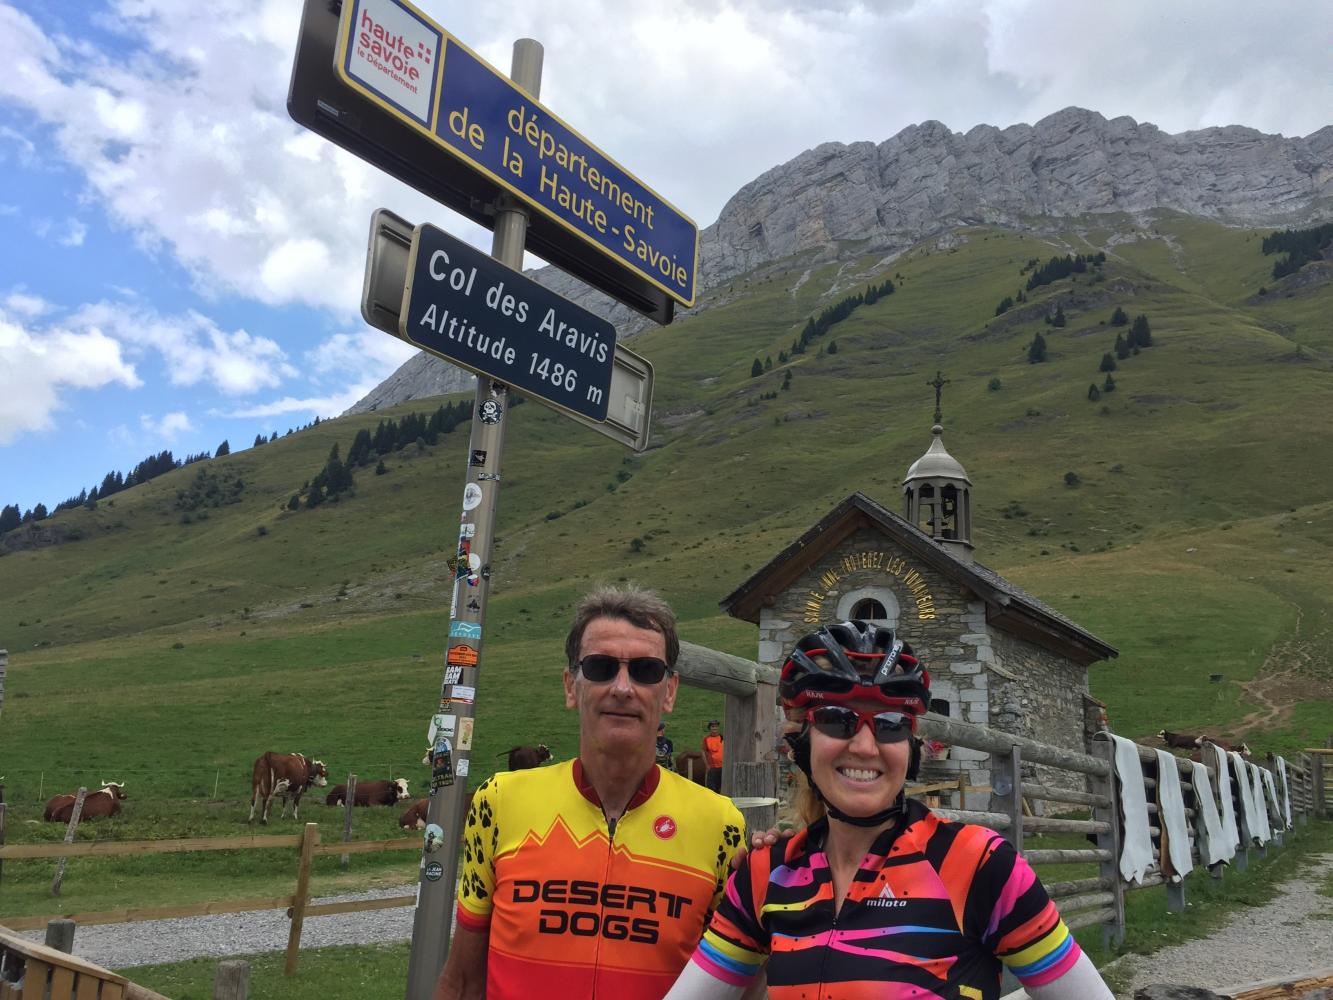 Col des Aravis North Bike Climb - PJAMM Cycling